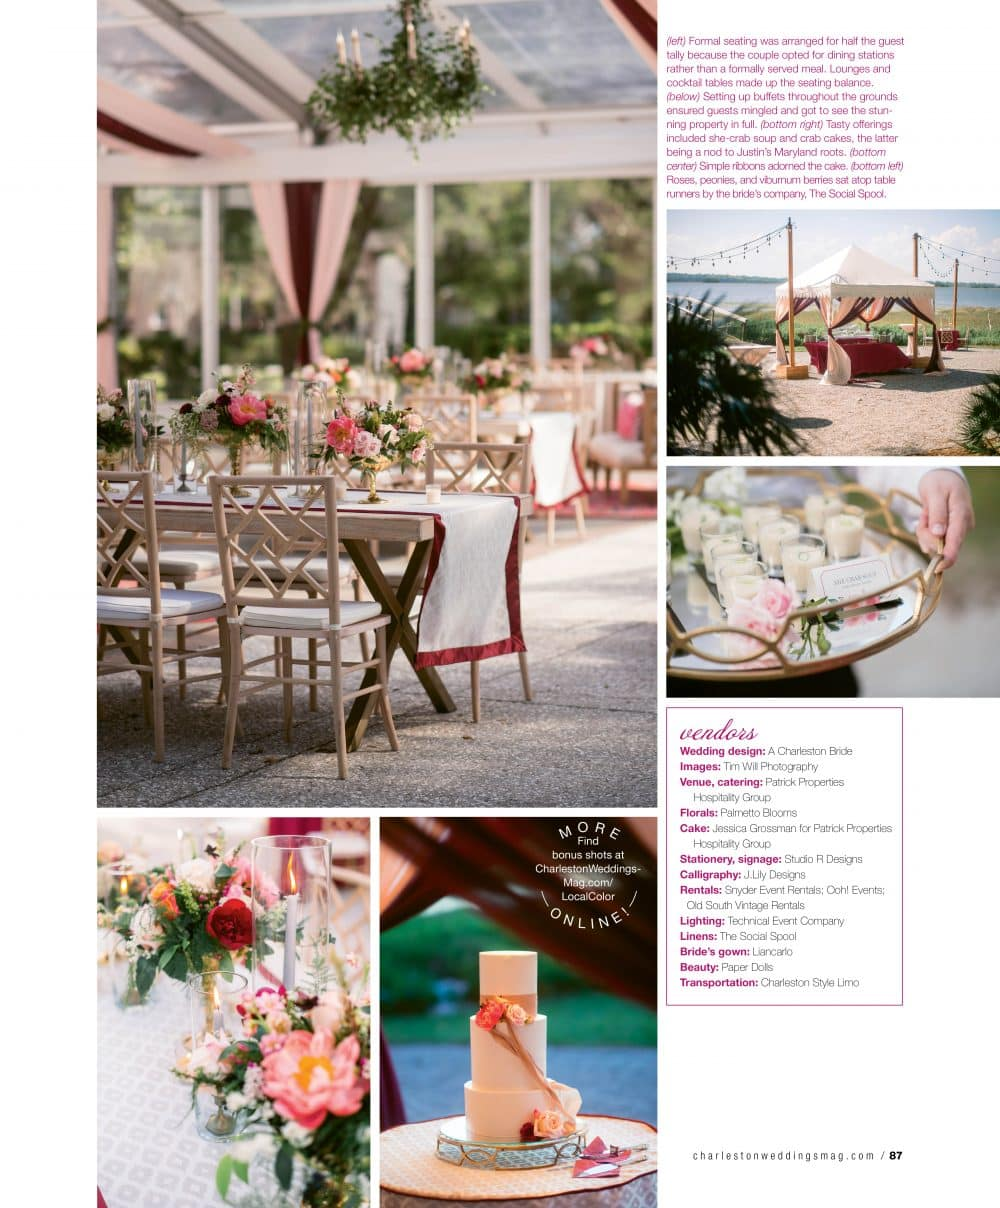 Charleston Weddings Spring 2018 Lowndes Grove